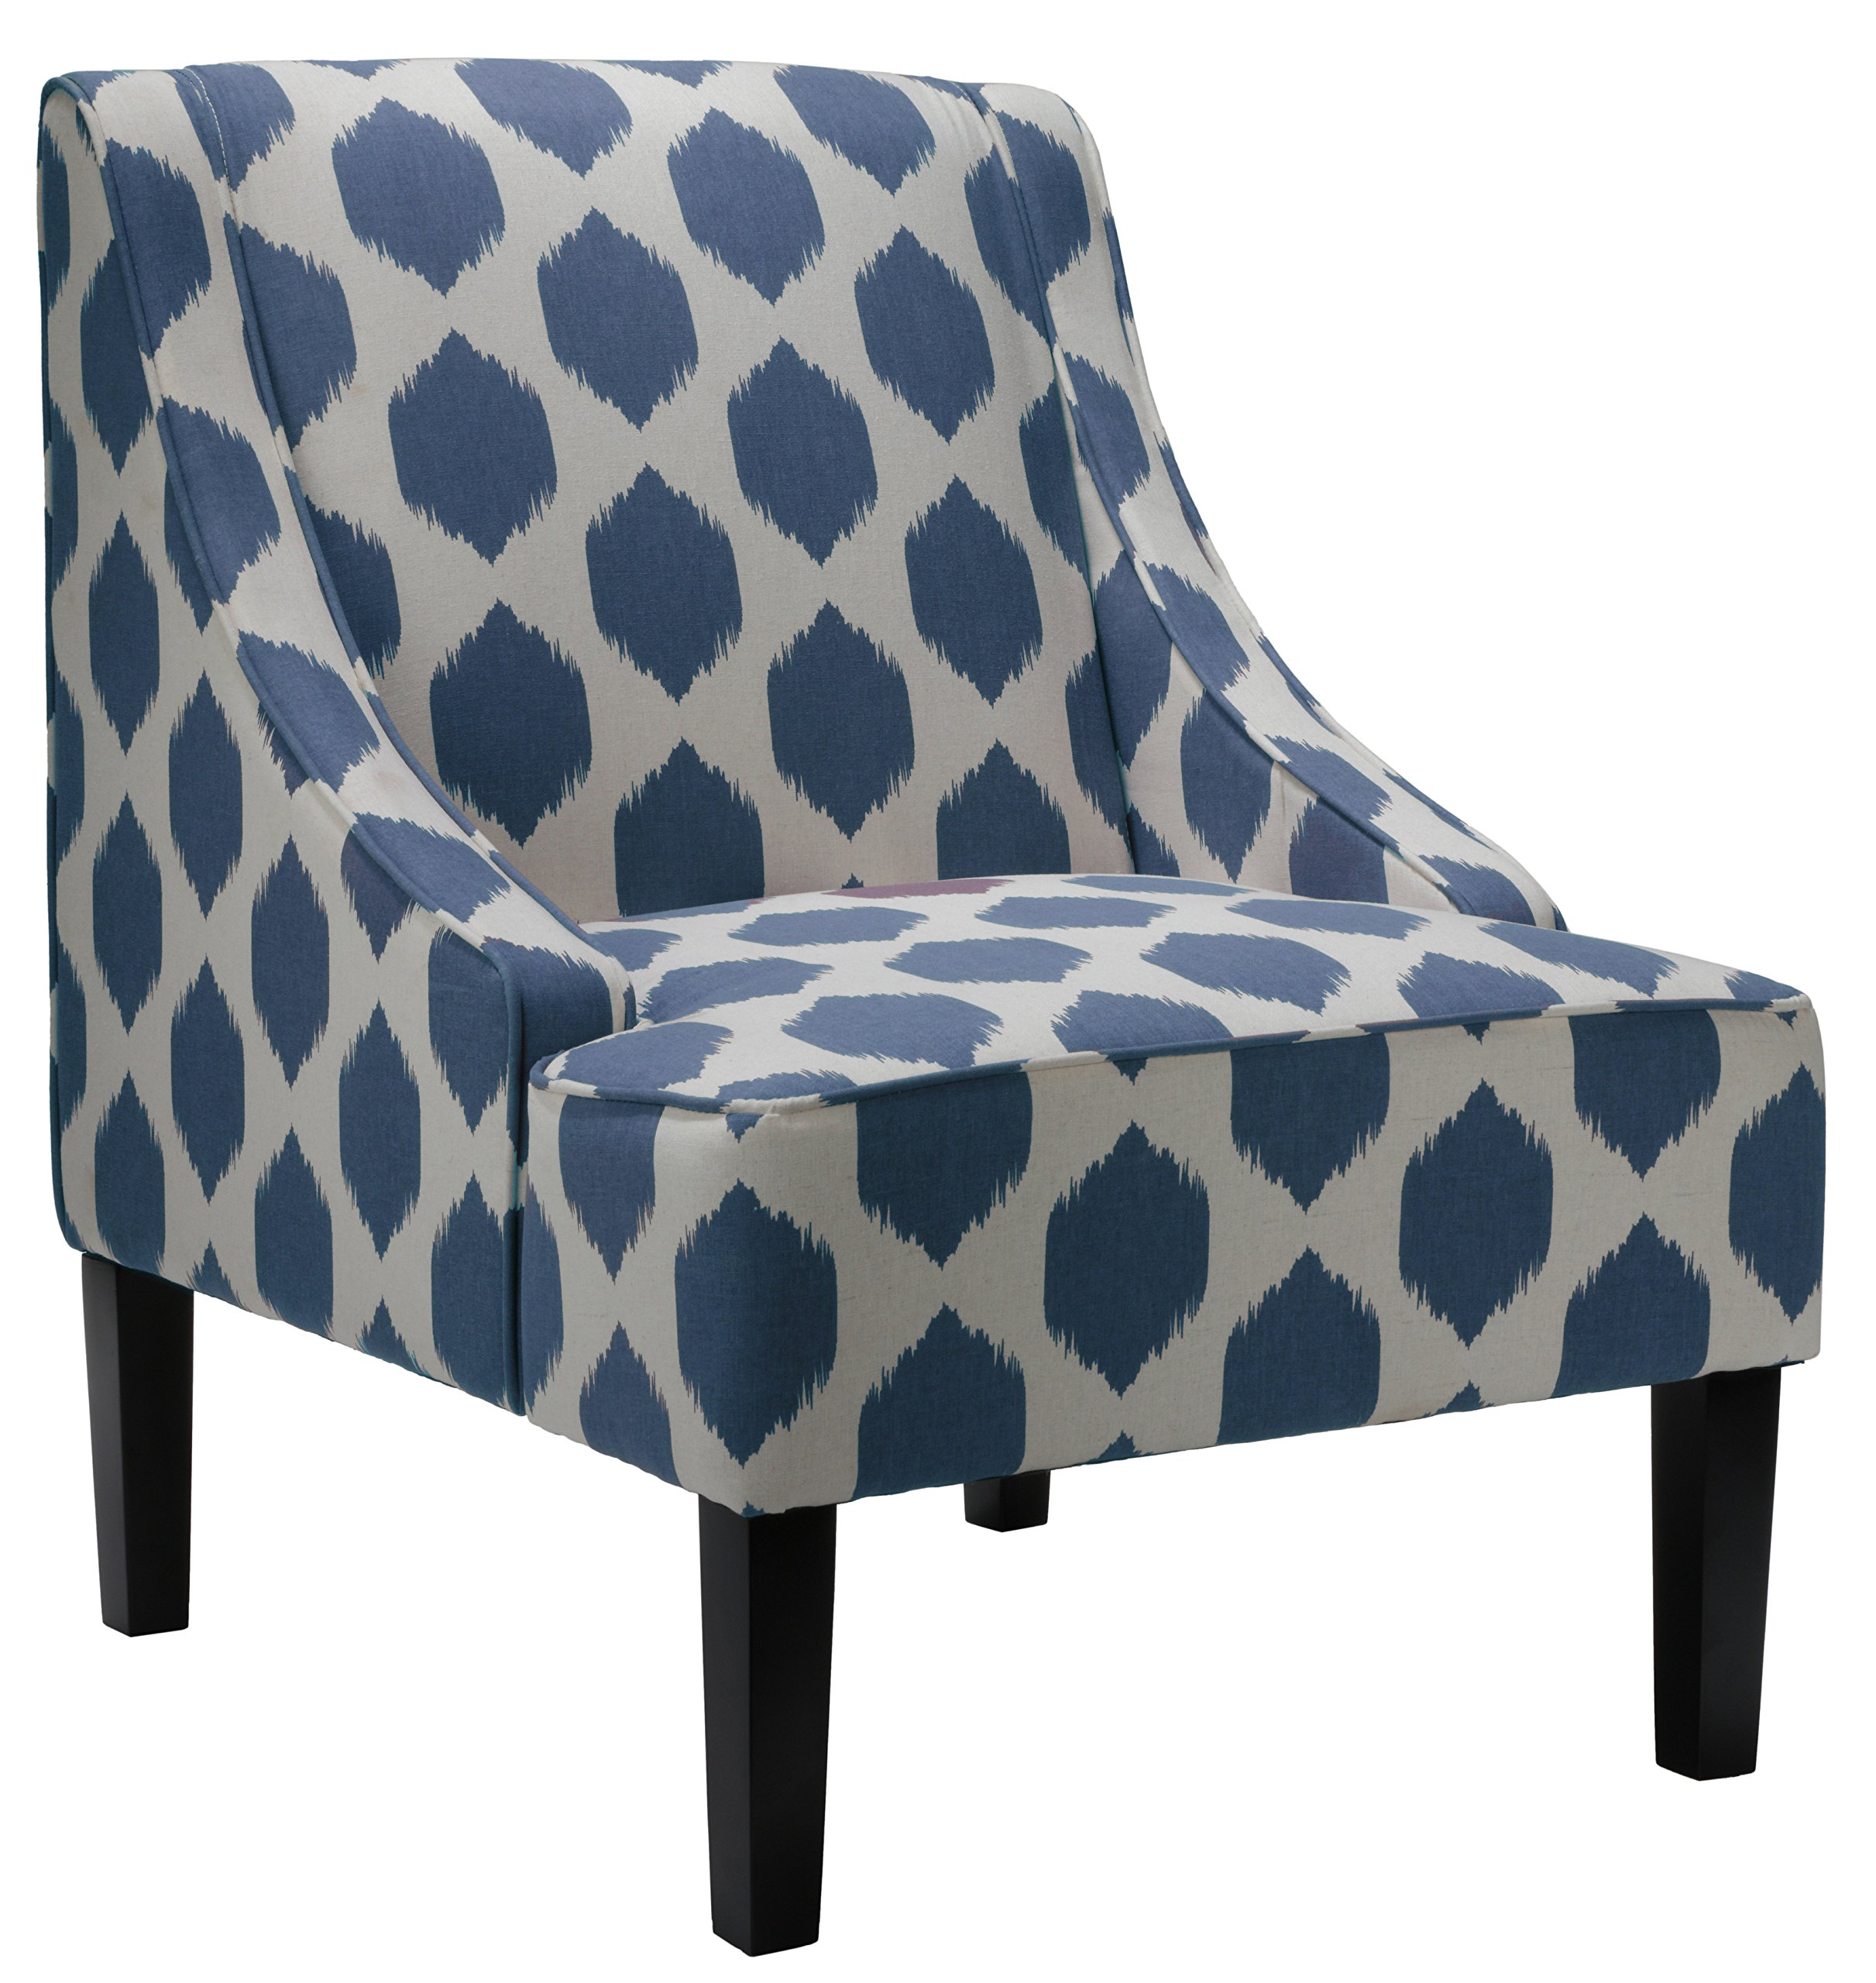 Cortesi Home Celene Accent Chair, Blue - White and blue linen-like fabric Recessed arms Solid wood frame and legs - living-room-furniture, living-room, accent-chairs - 91LHPvO8zPL -